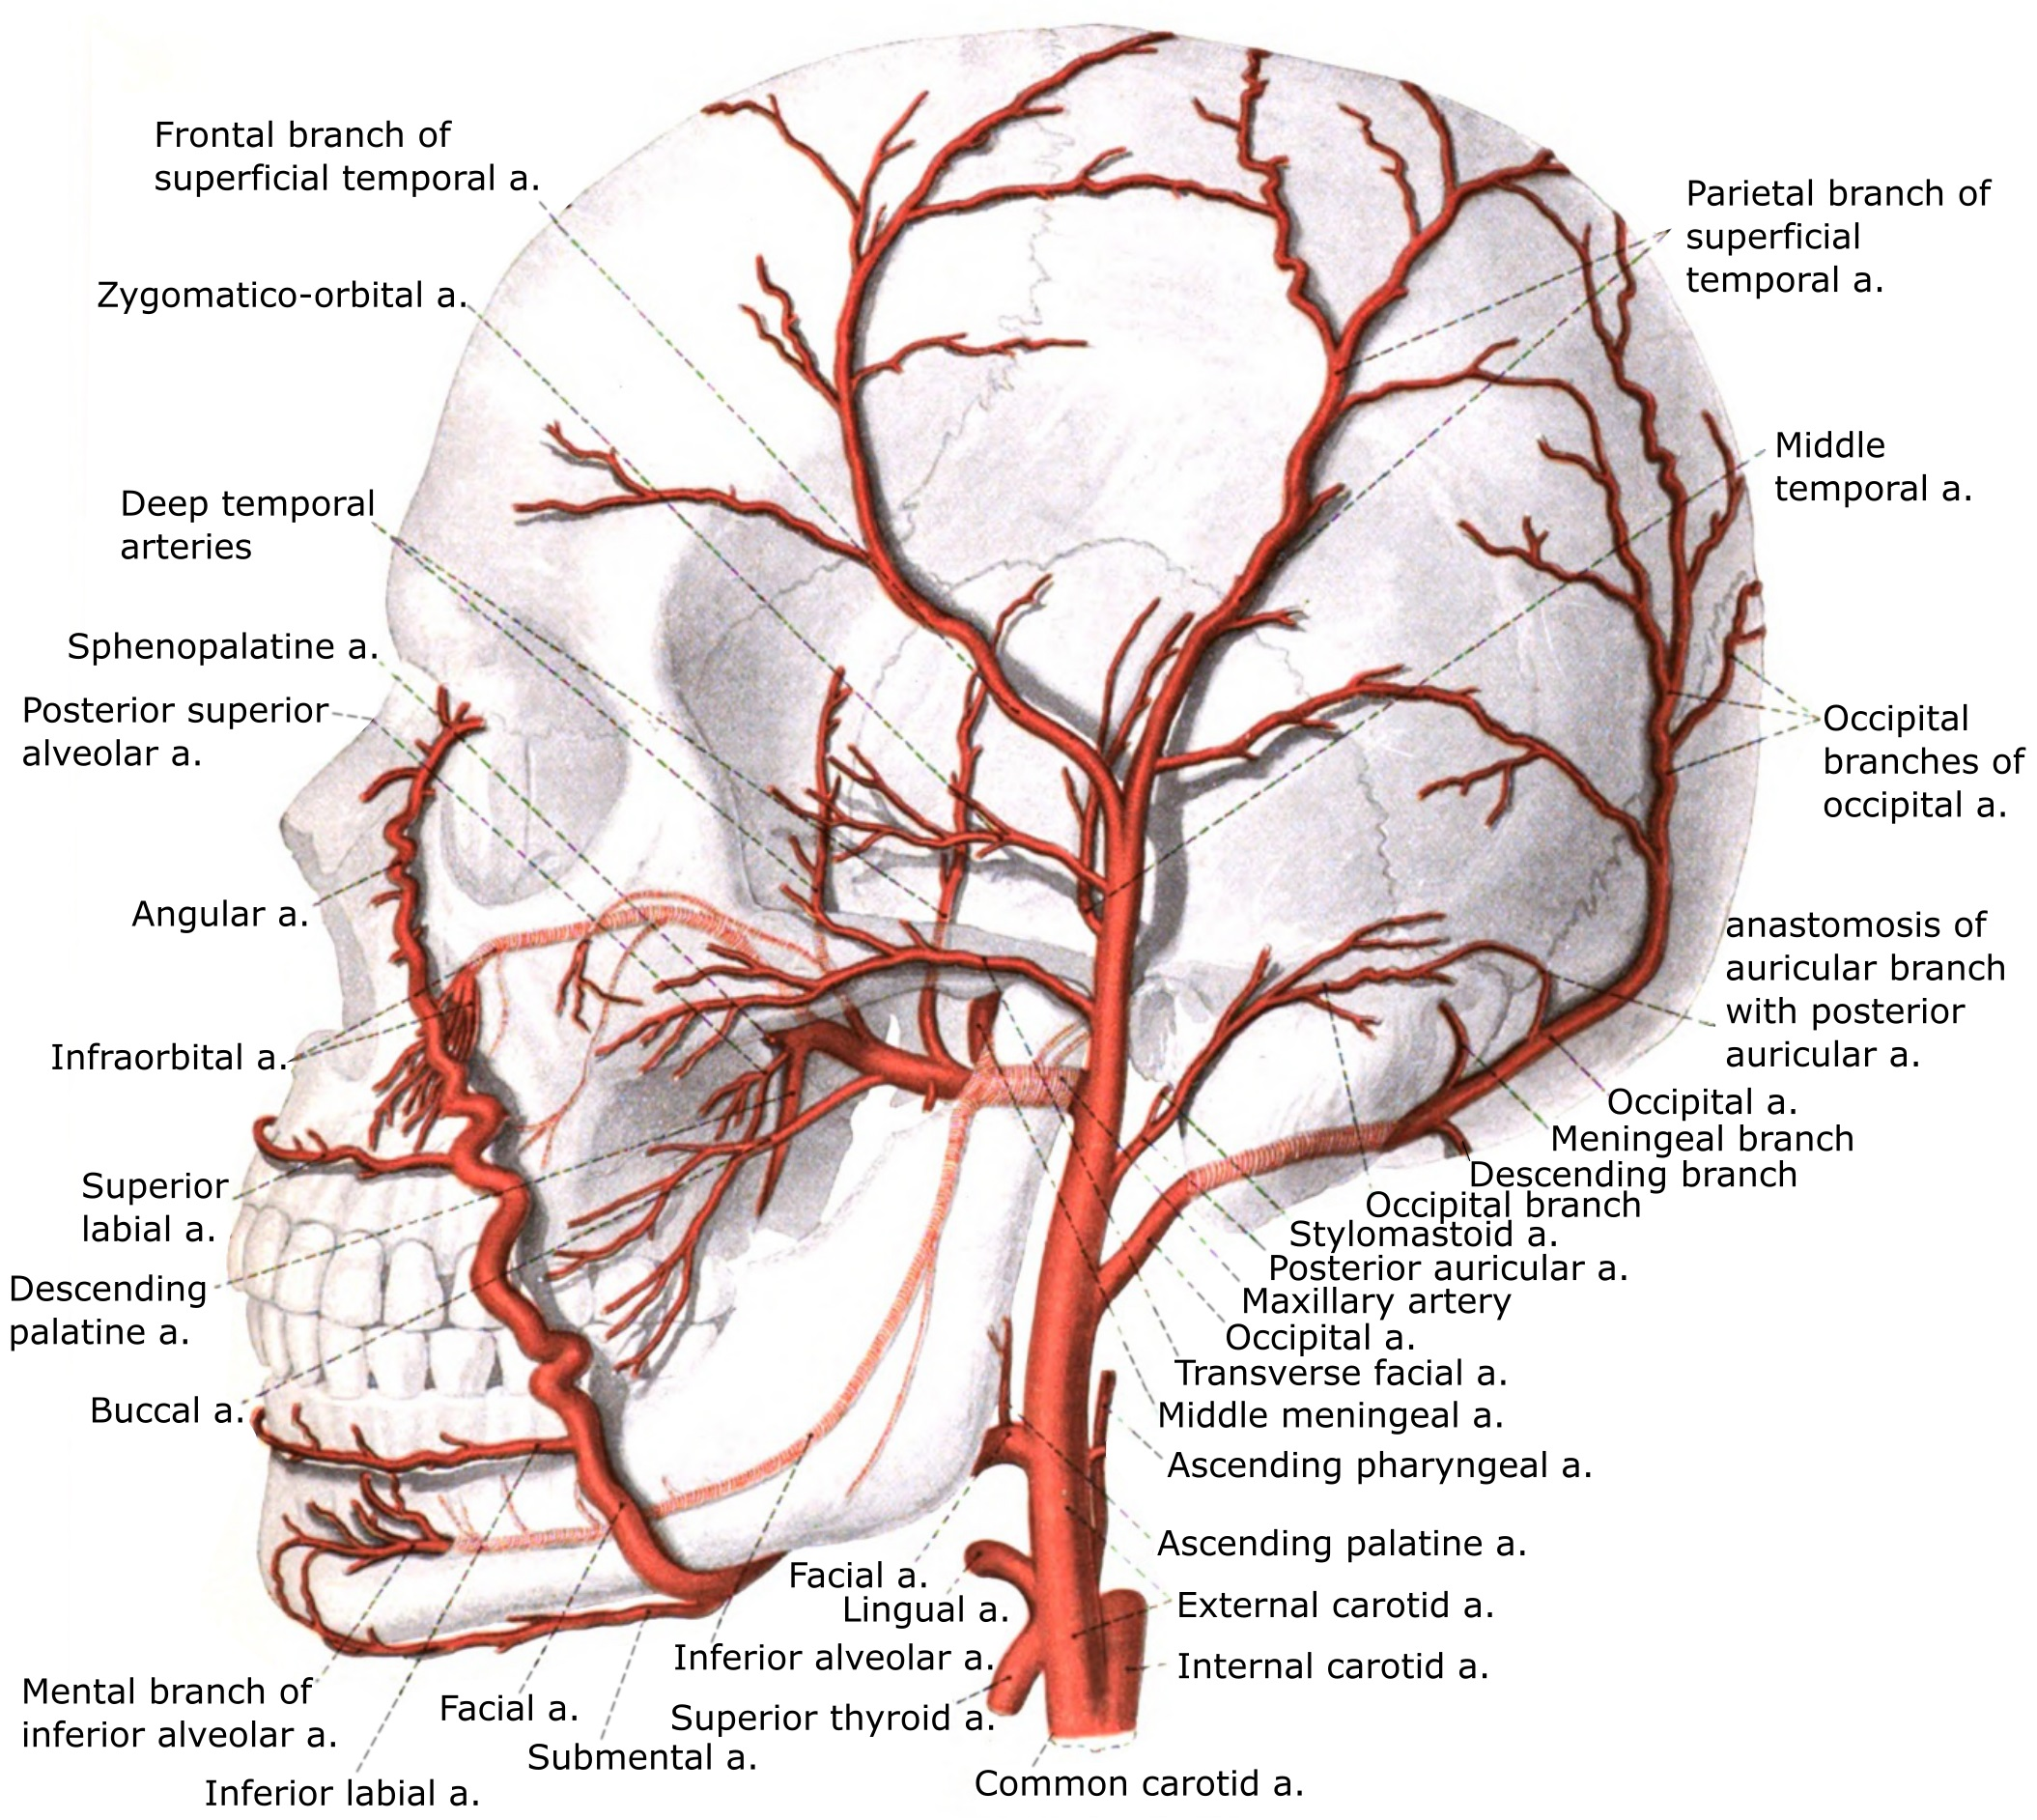 File:External carotid artery with branches.jpg - Wikimedia ...